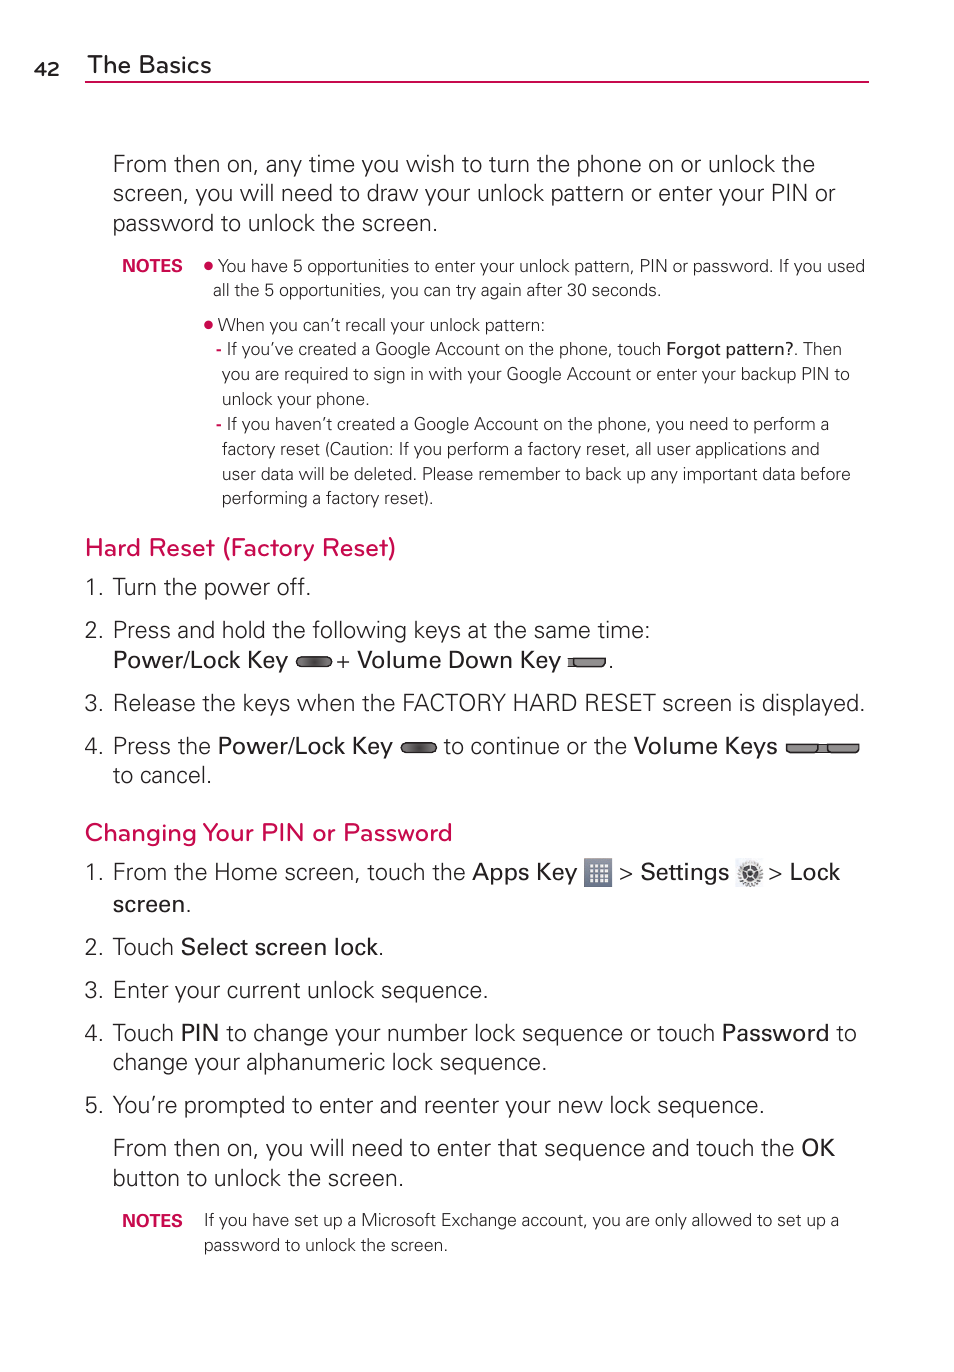 The basics, Hard reset (factory reset), Changing your pin or